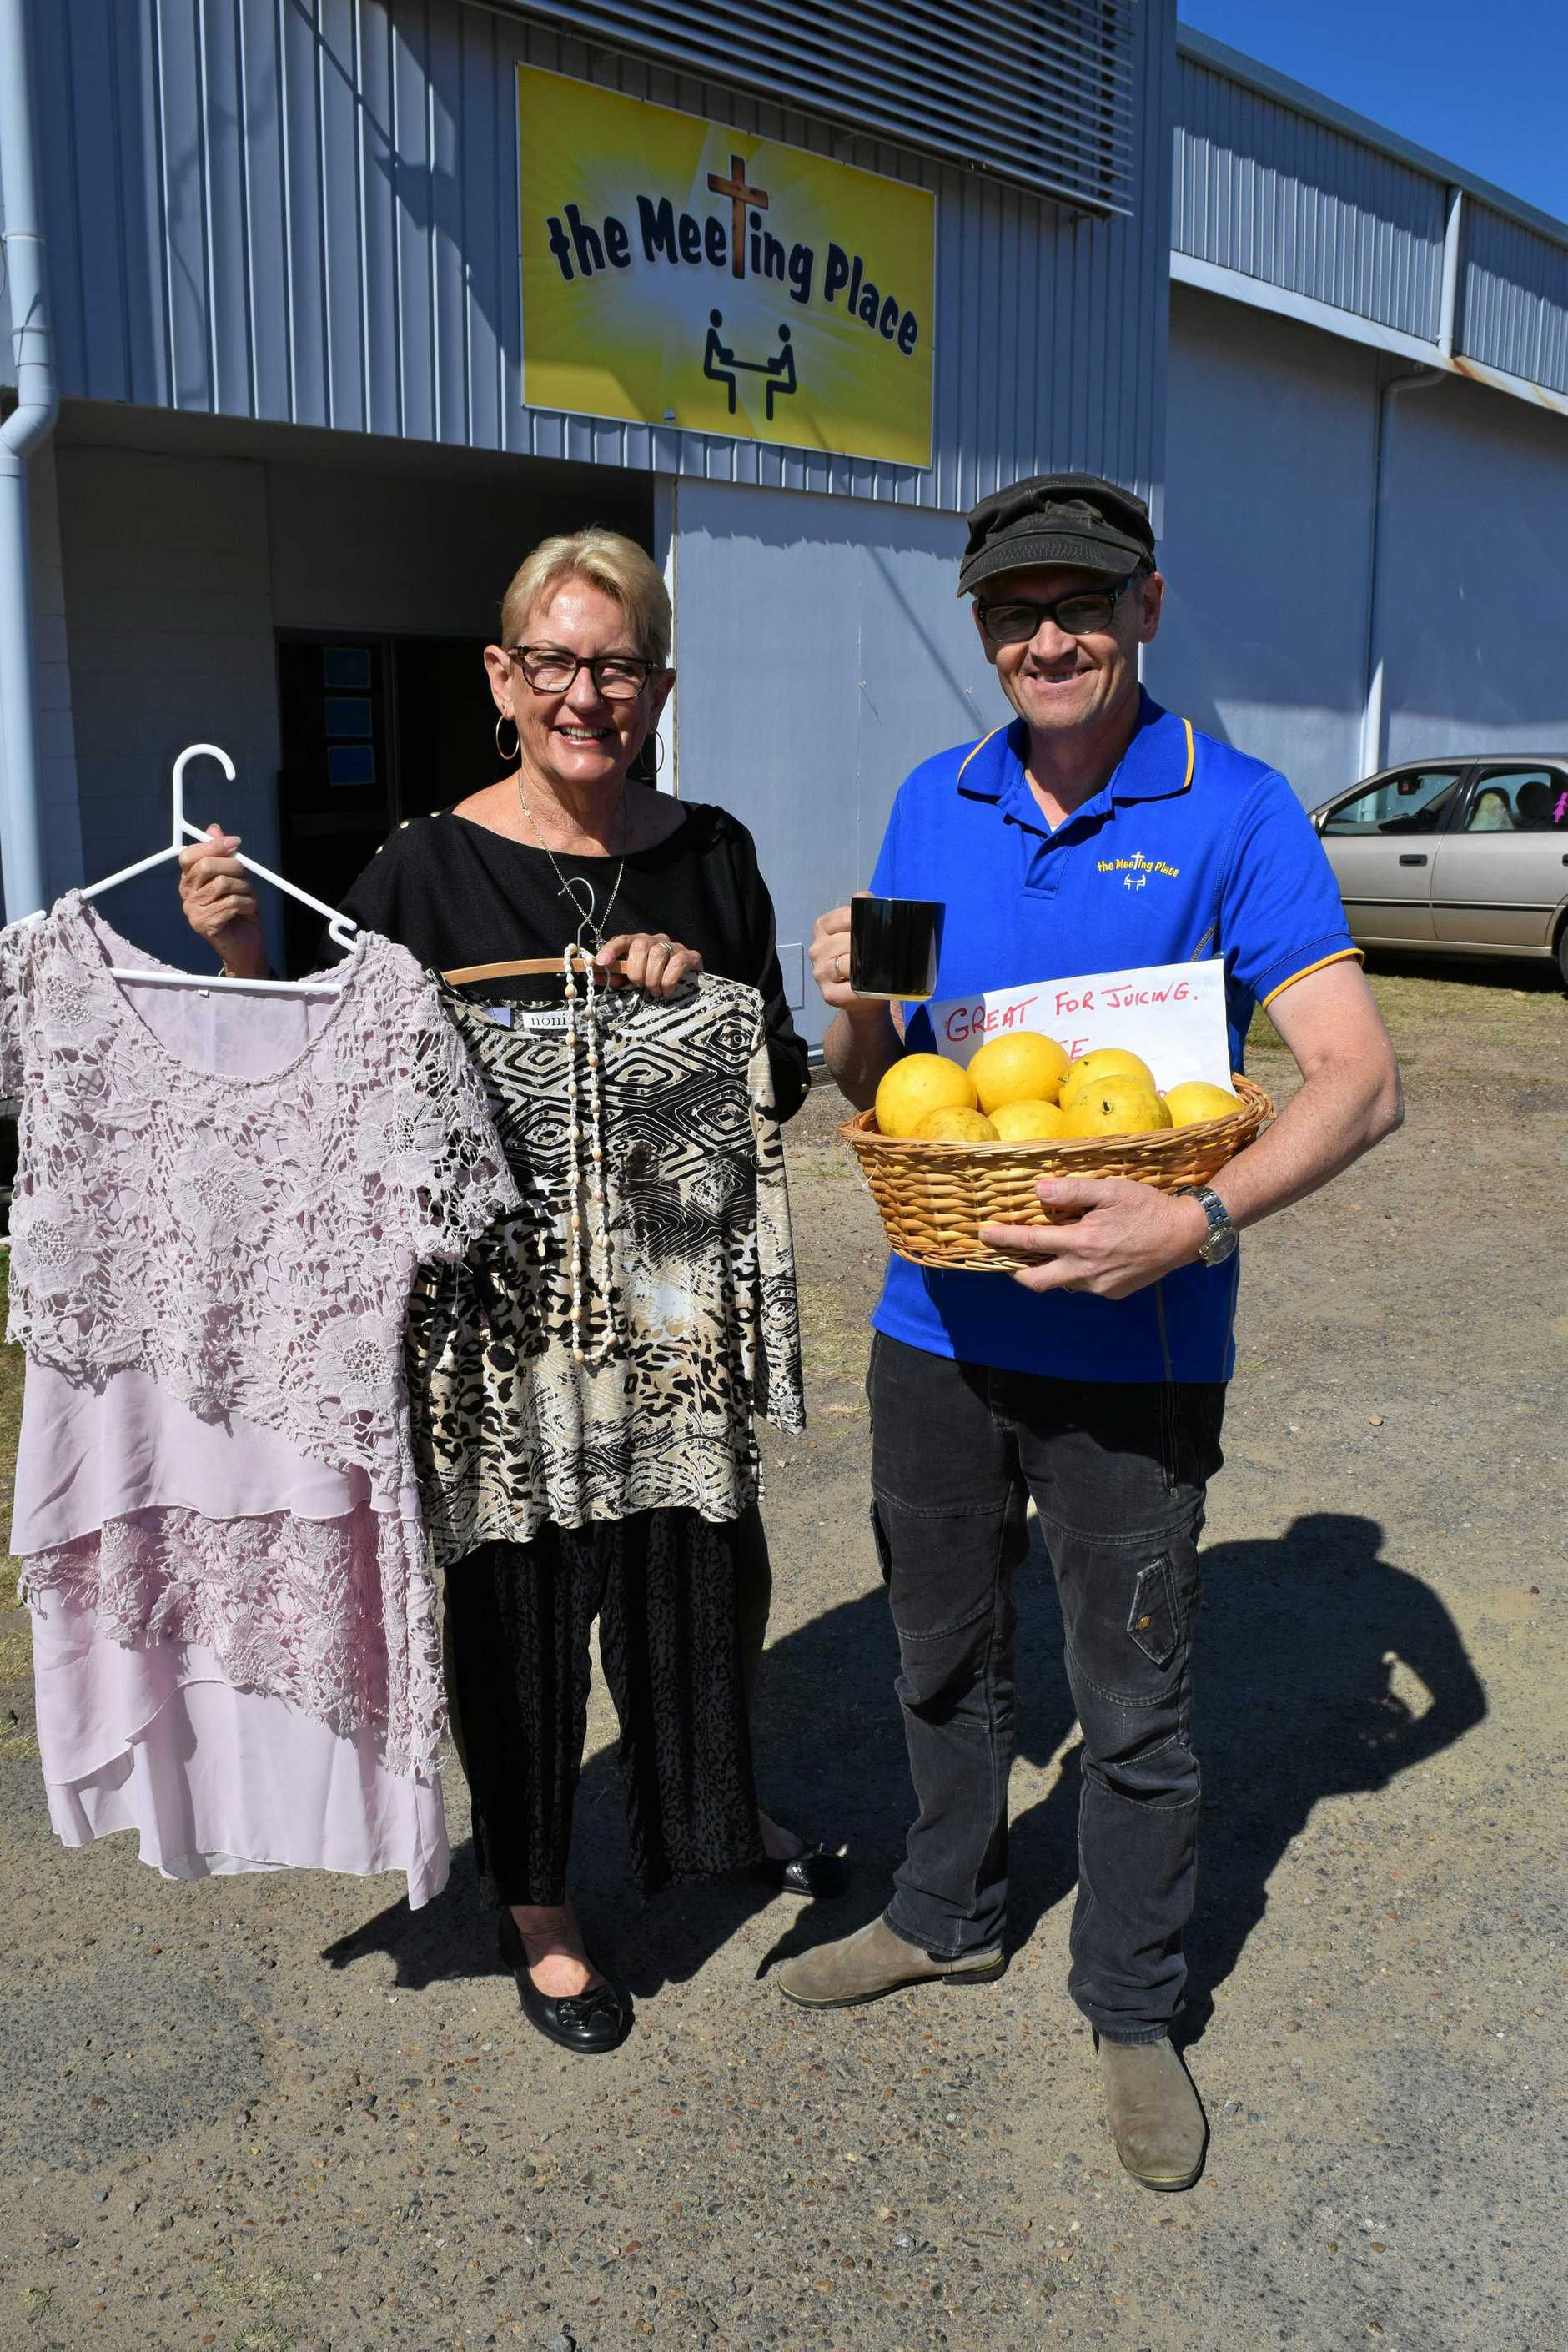 Chris Laughton from the Maryborough RV Homebase loves volunteering at The Meeting Place in between her travelling, pictured with caretaker Stephen Berry.